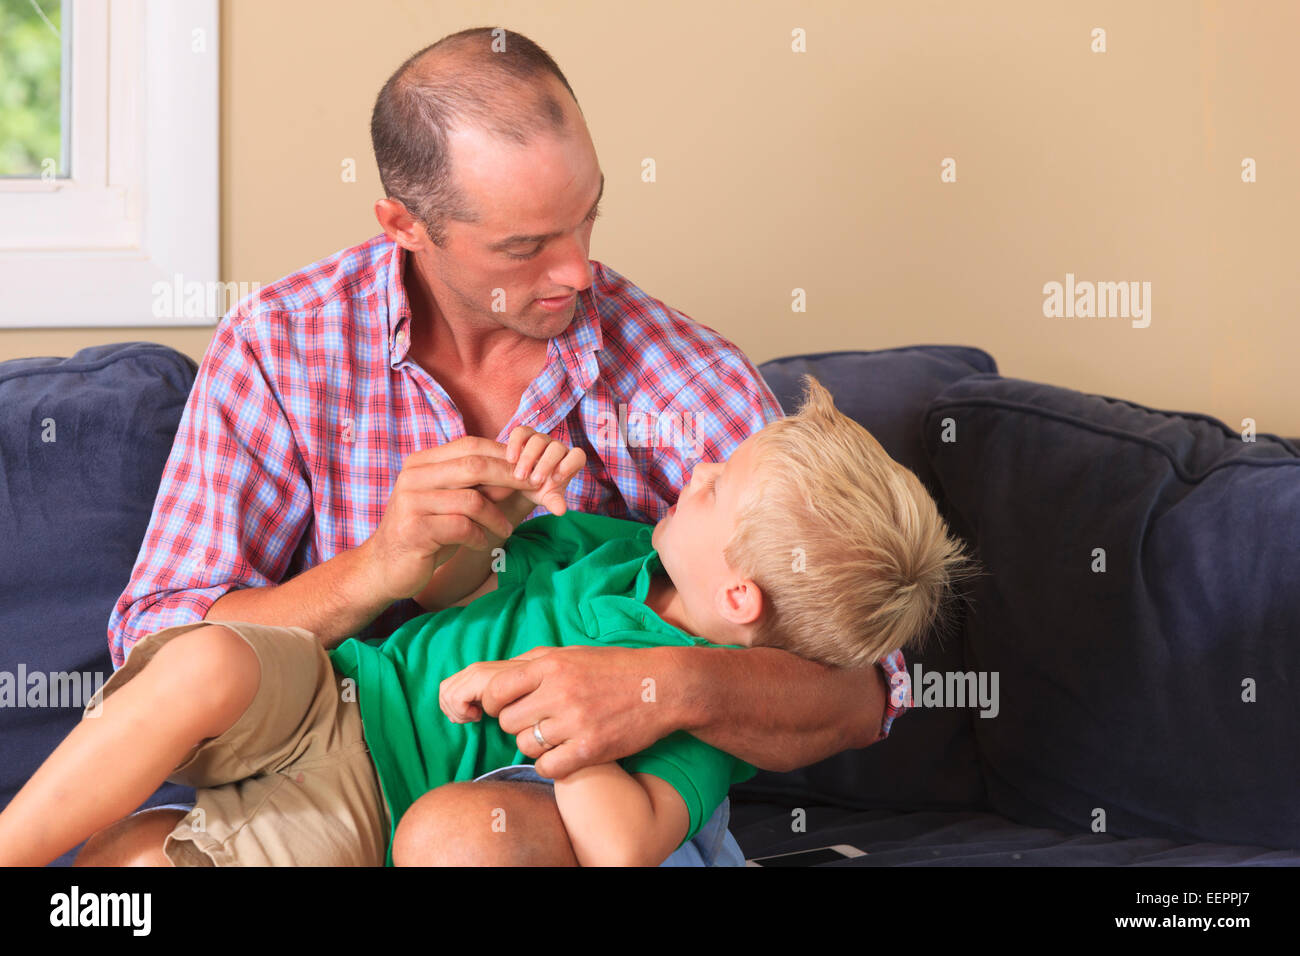 Father and son with hearing impairments signing 'no' in American sign language - Stock Image